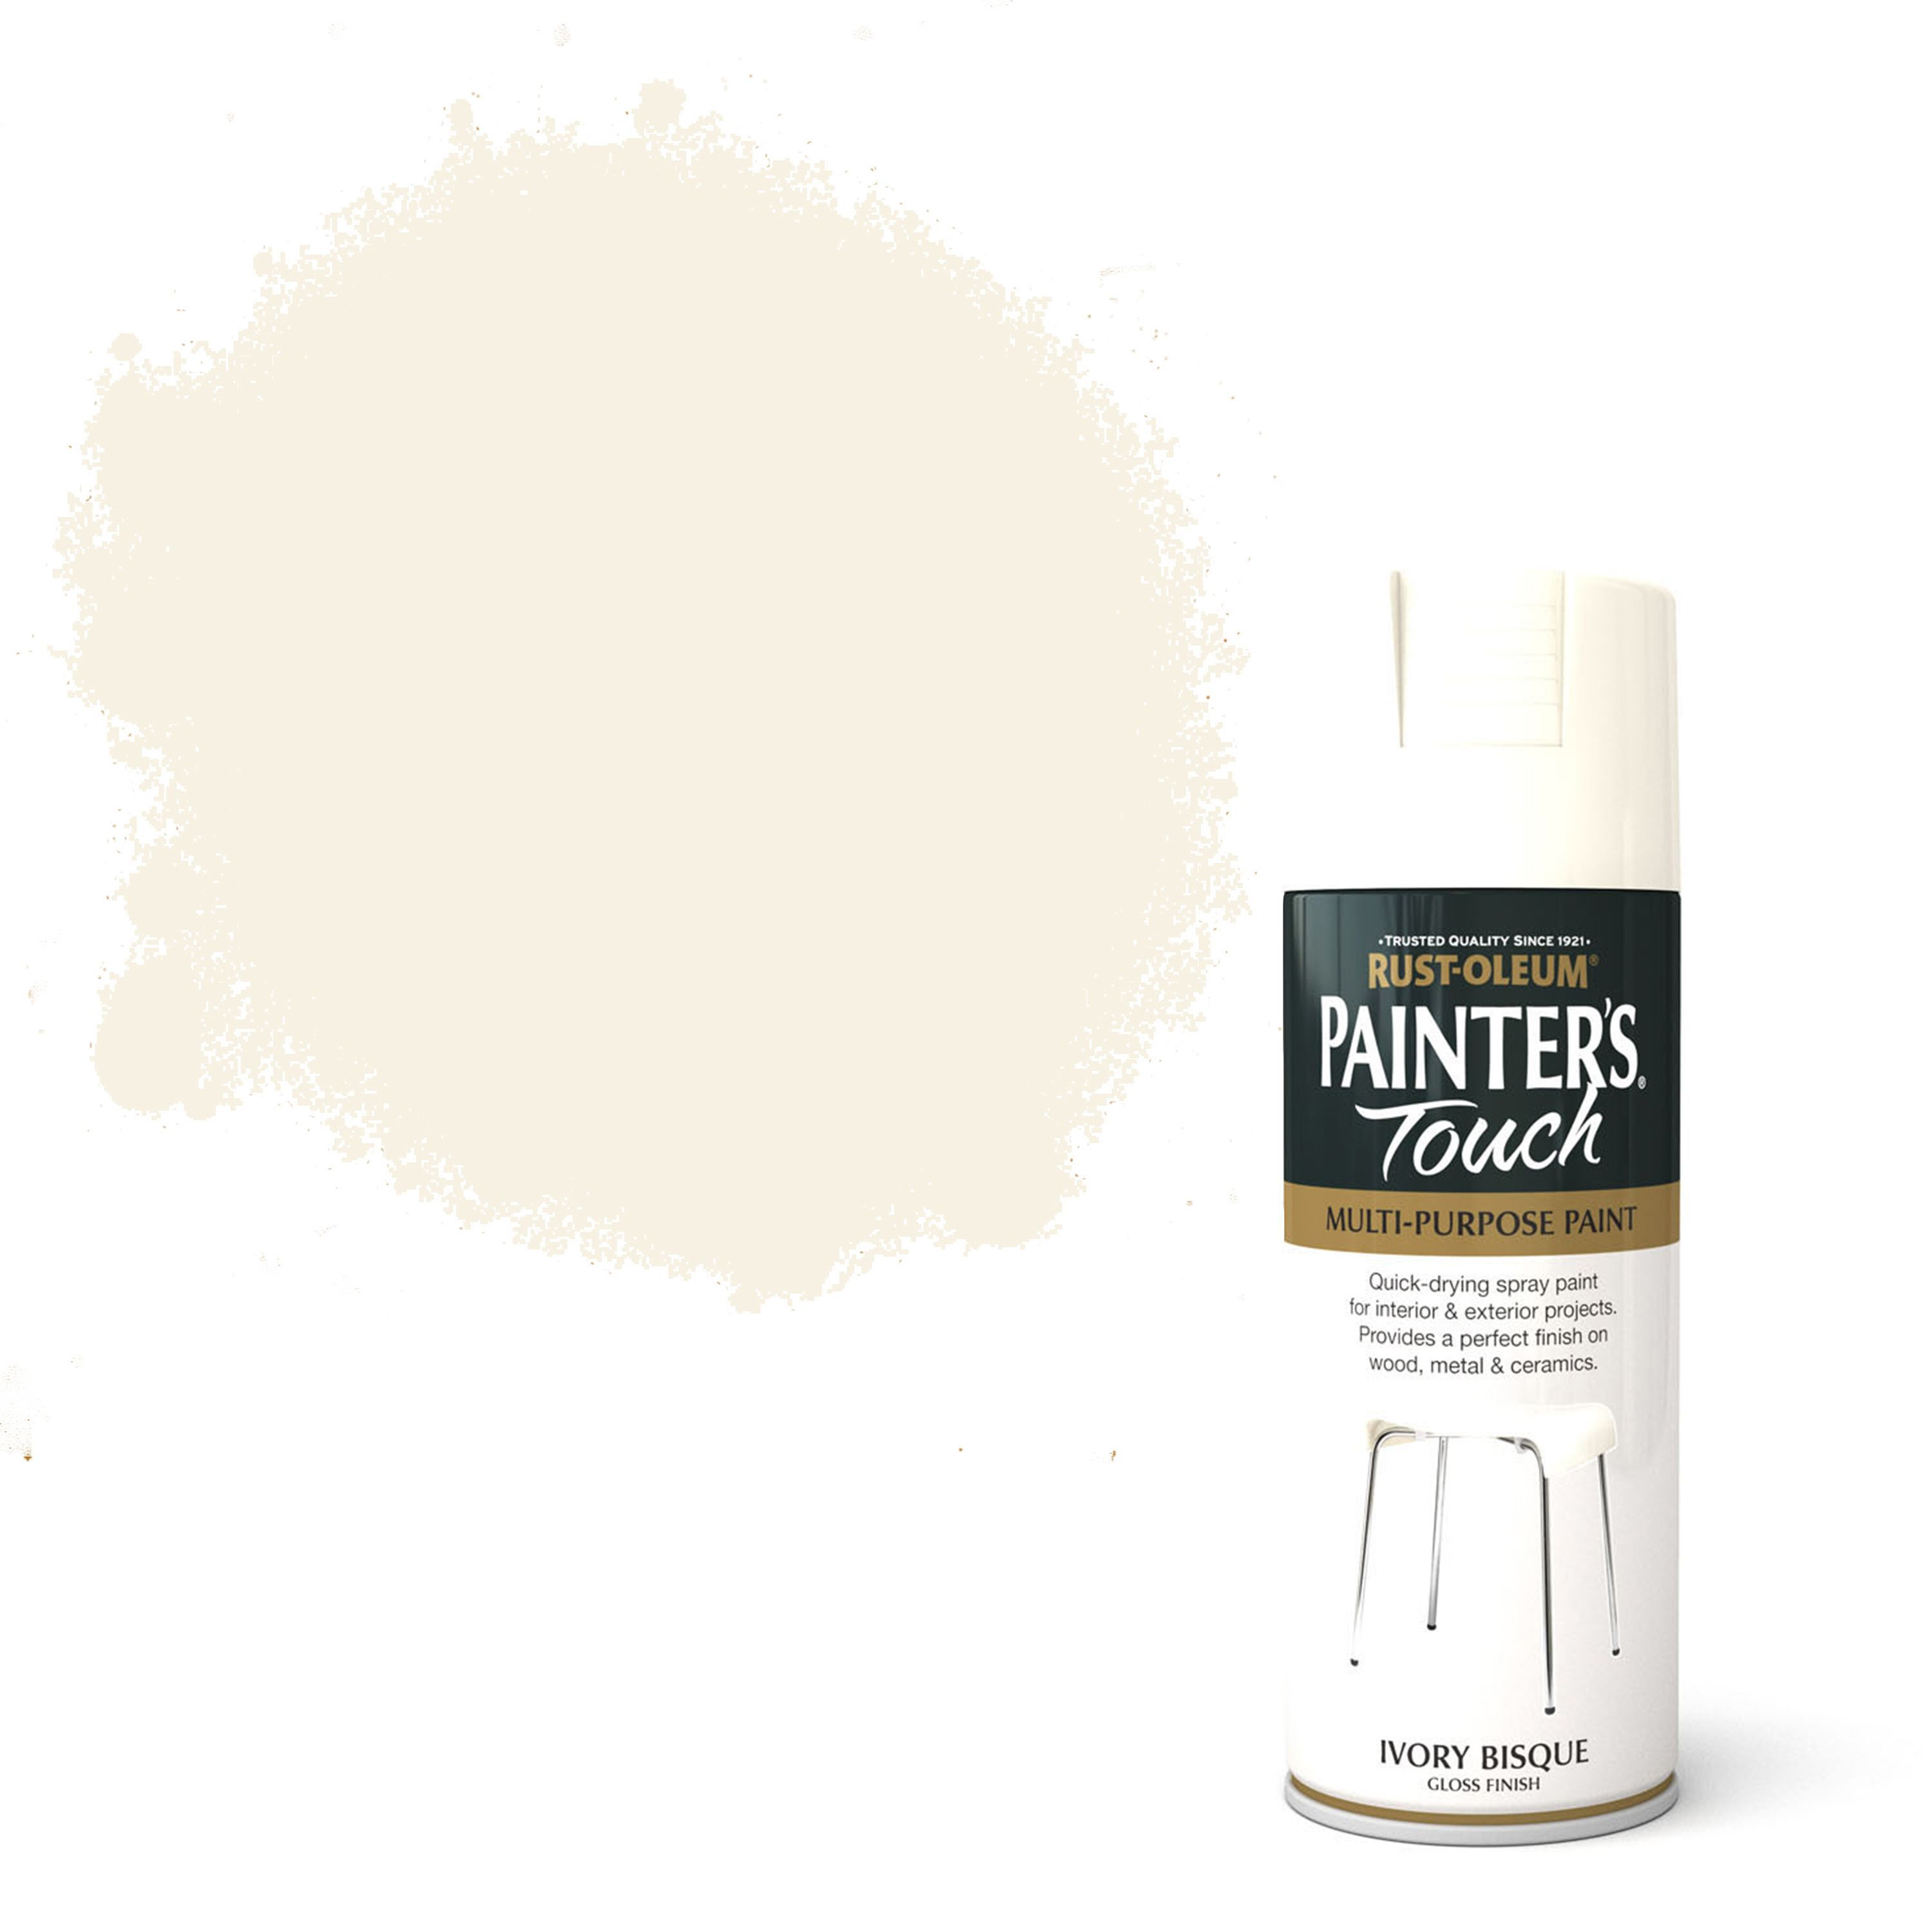 Rust-oleum Painter's Touch Ivory Bisque Gloss Gloss Decorative Spray Paint 400 Ml